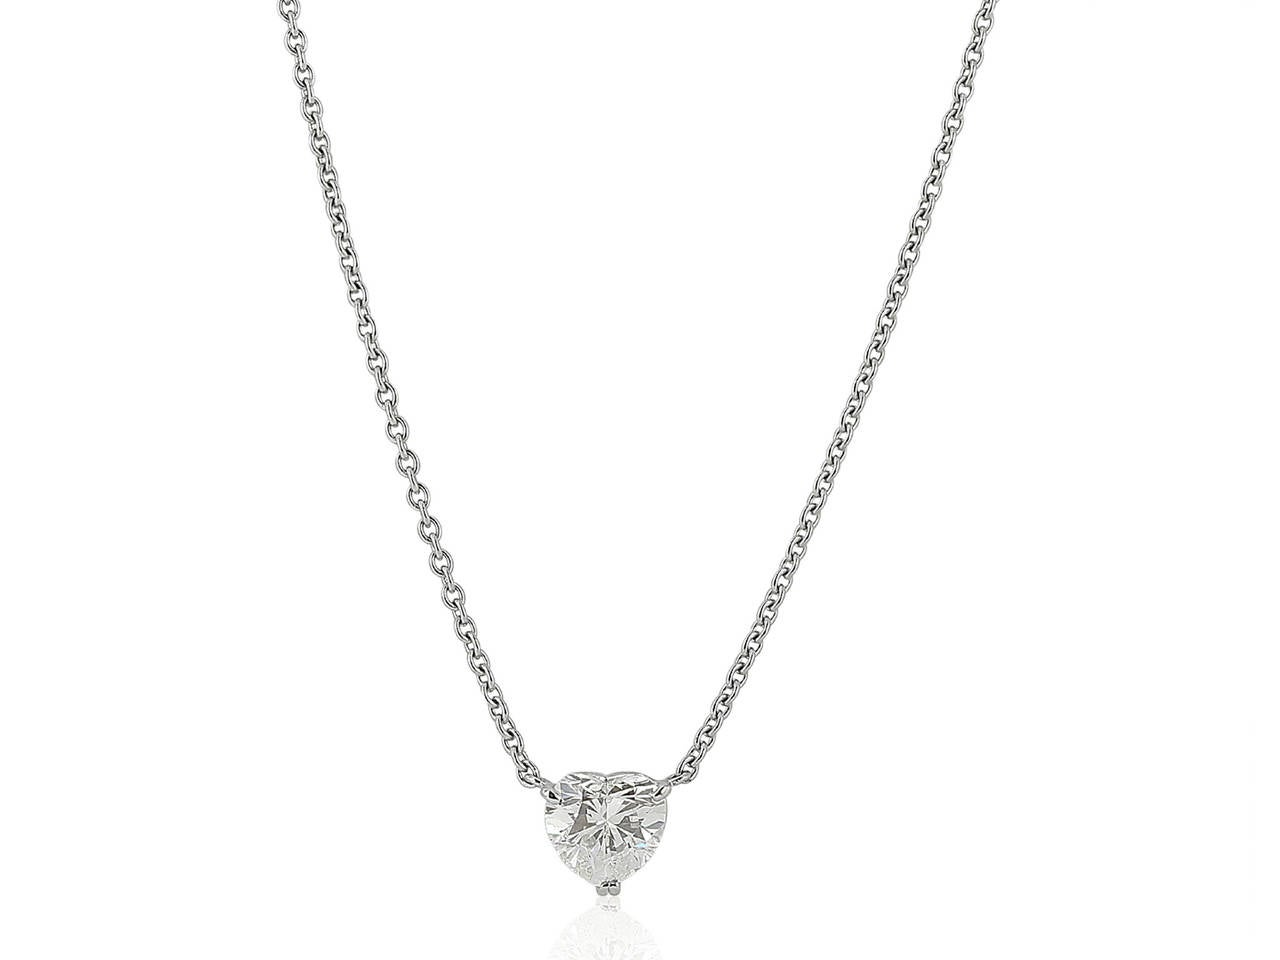 Platinum pendant consisting of one prong set heart shape diamond weighing 1.89 carats having a color and clarity of H/SI1 respectively.